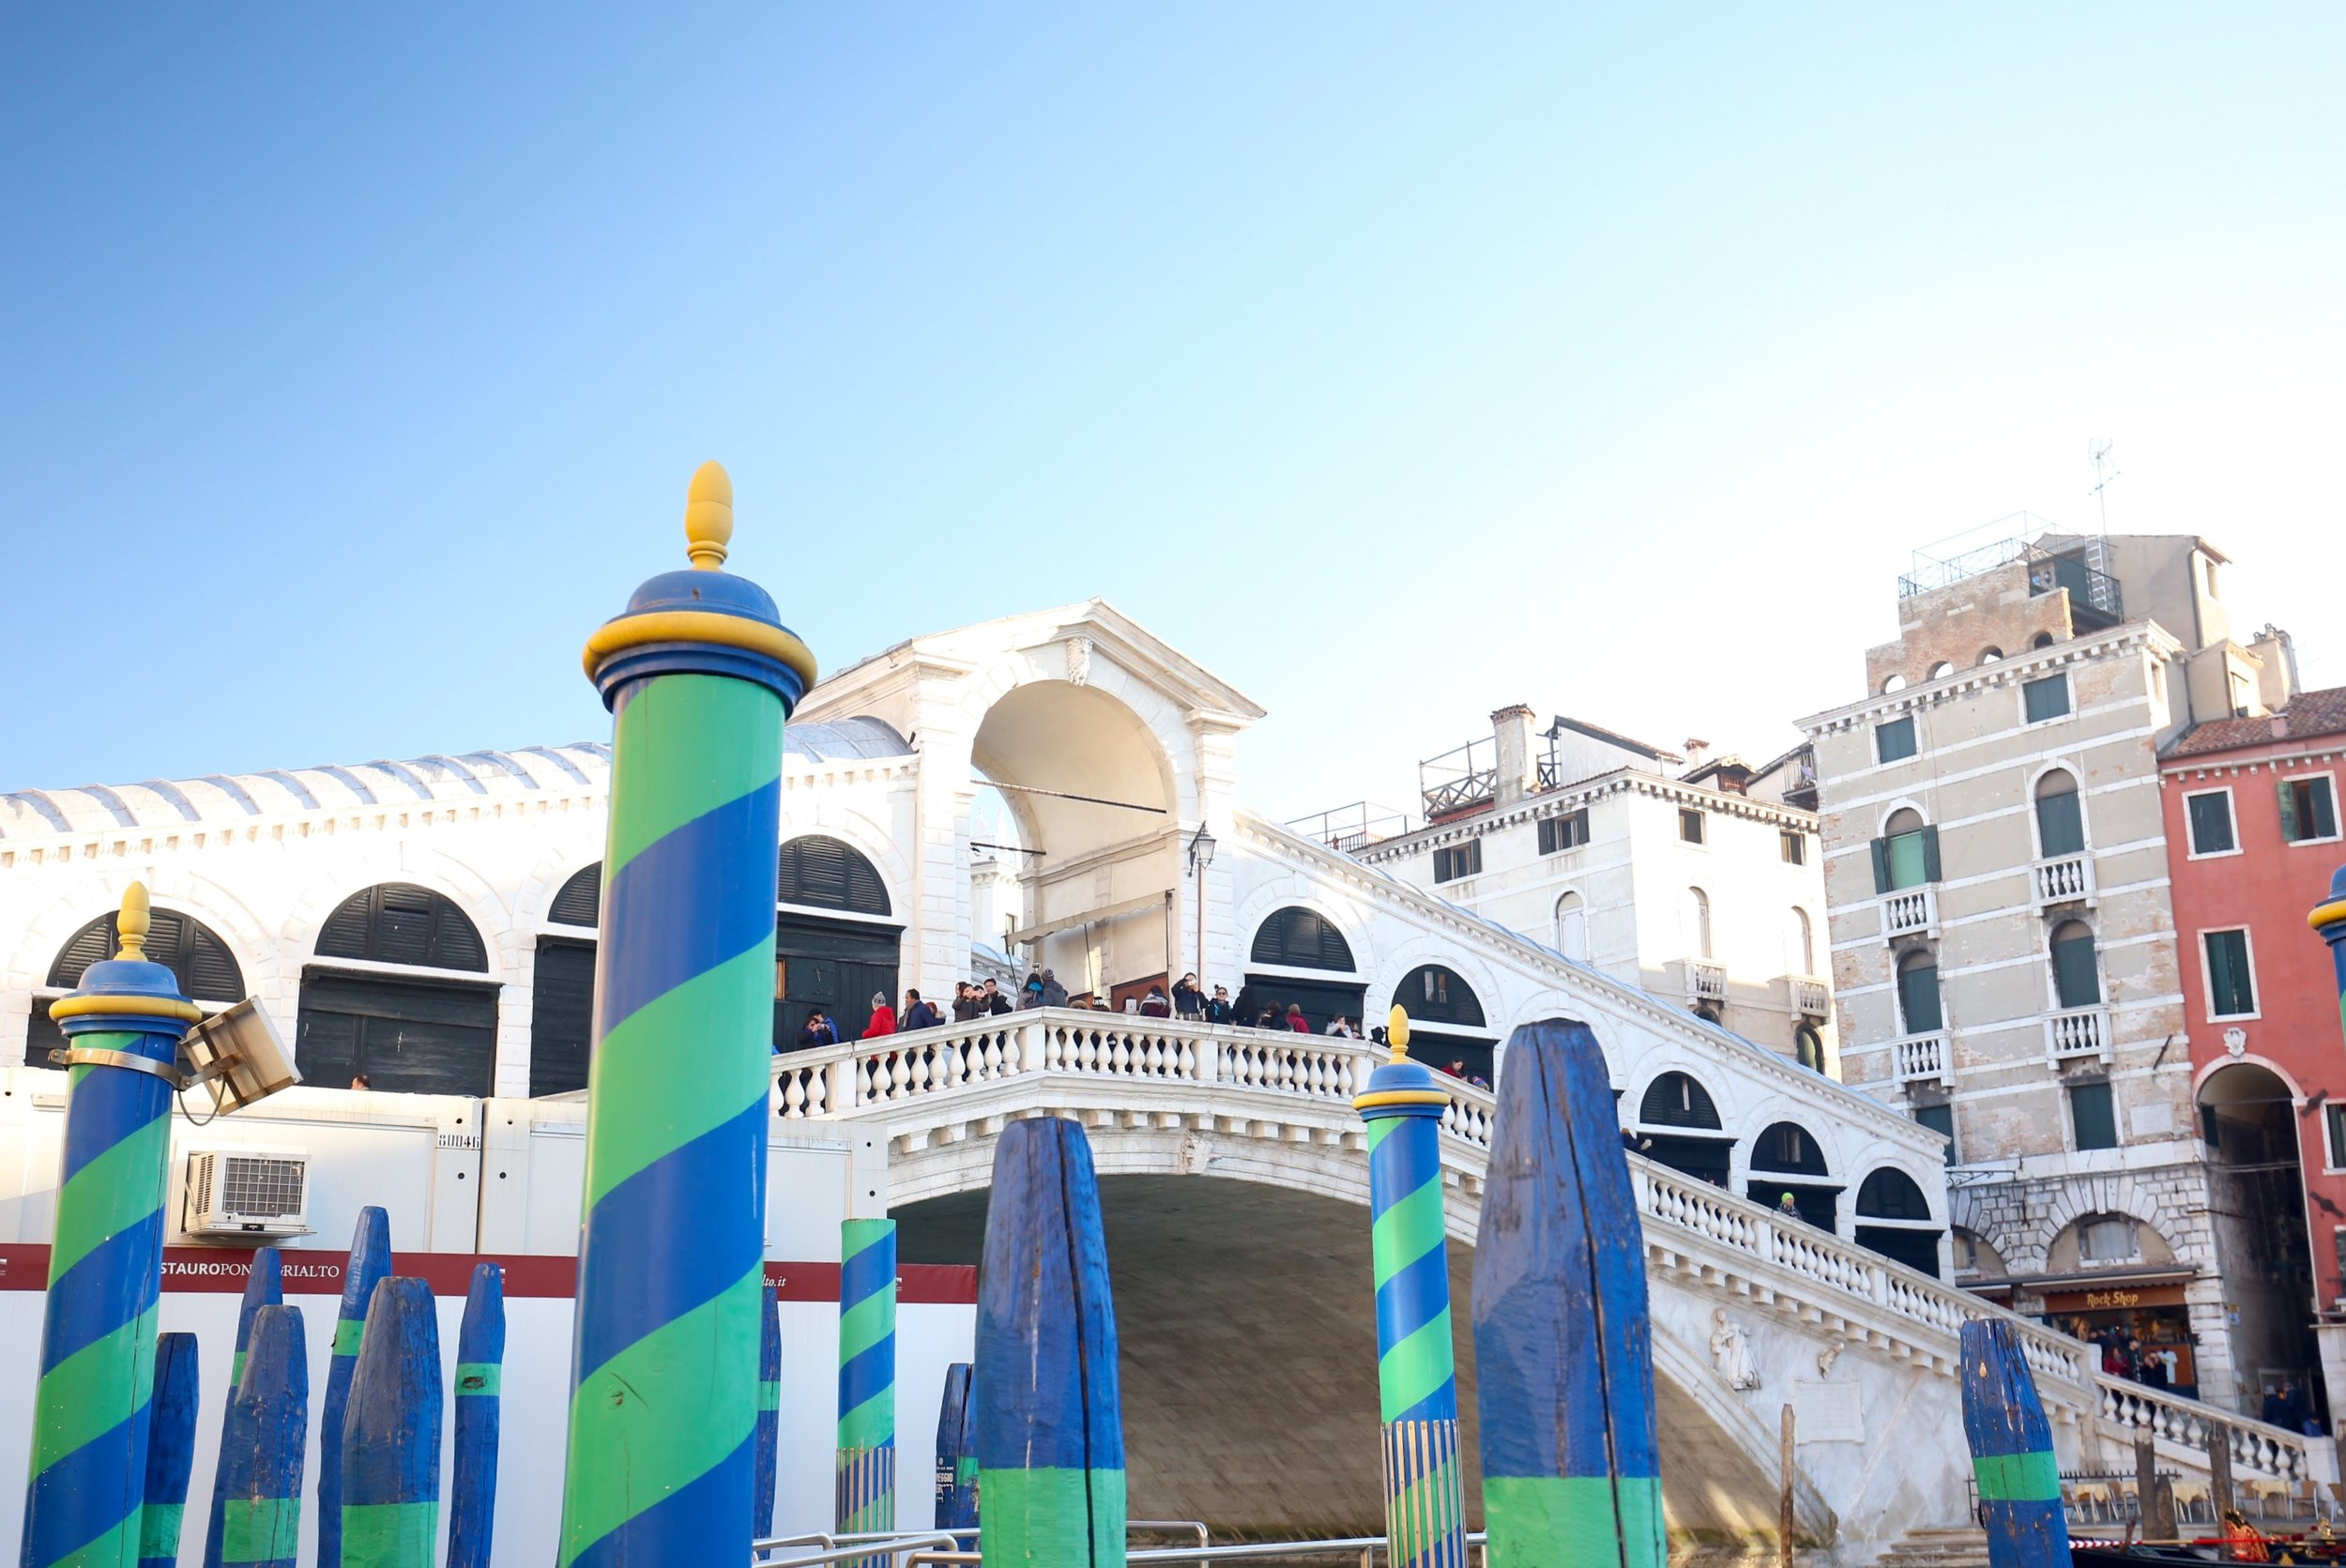 Rialto Bridge and blue and green bricoles by the Grand Canal.